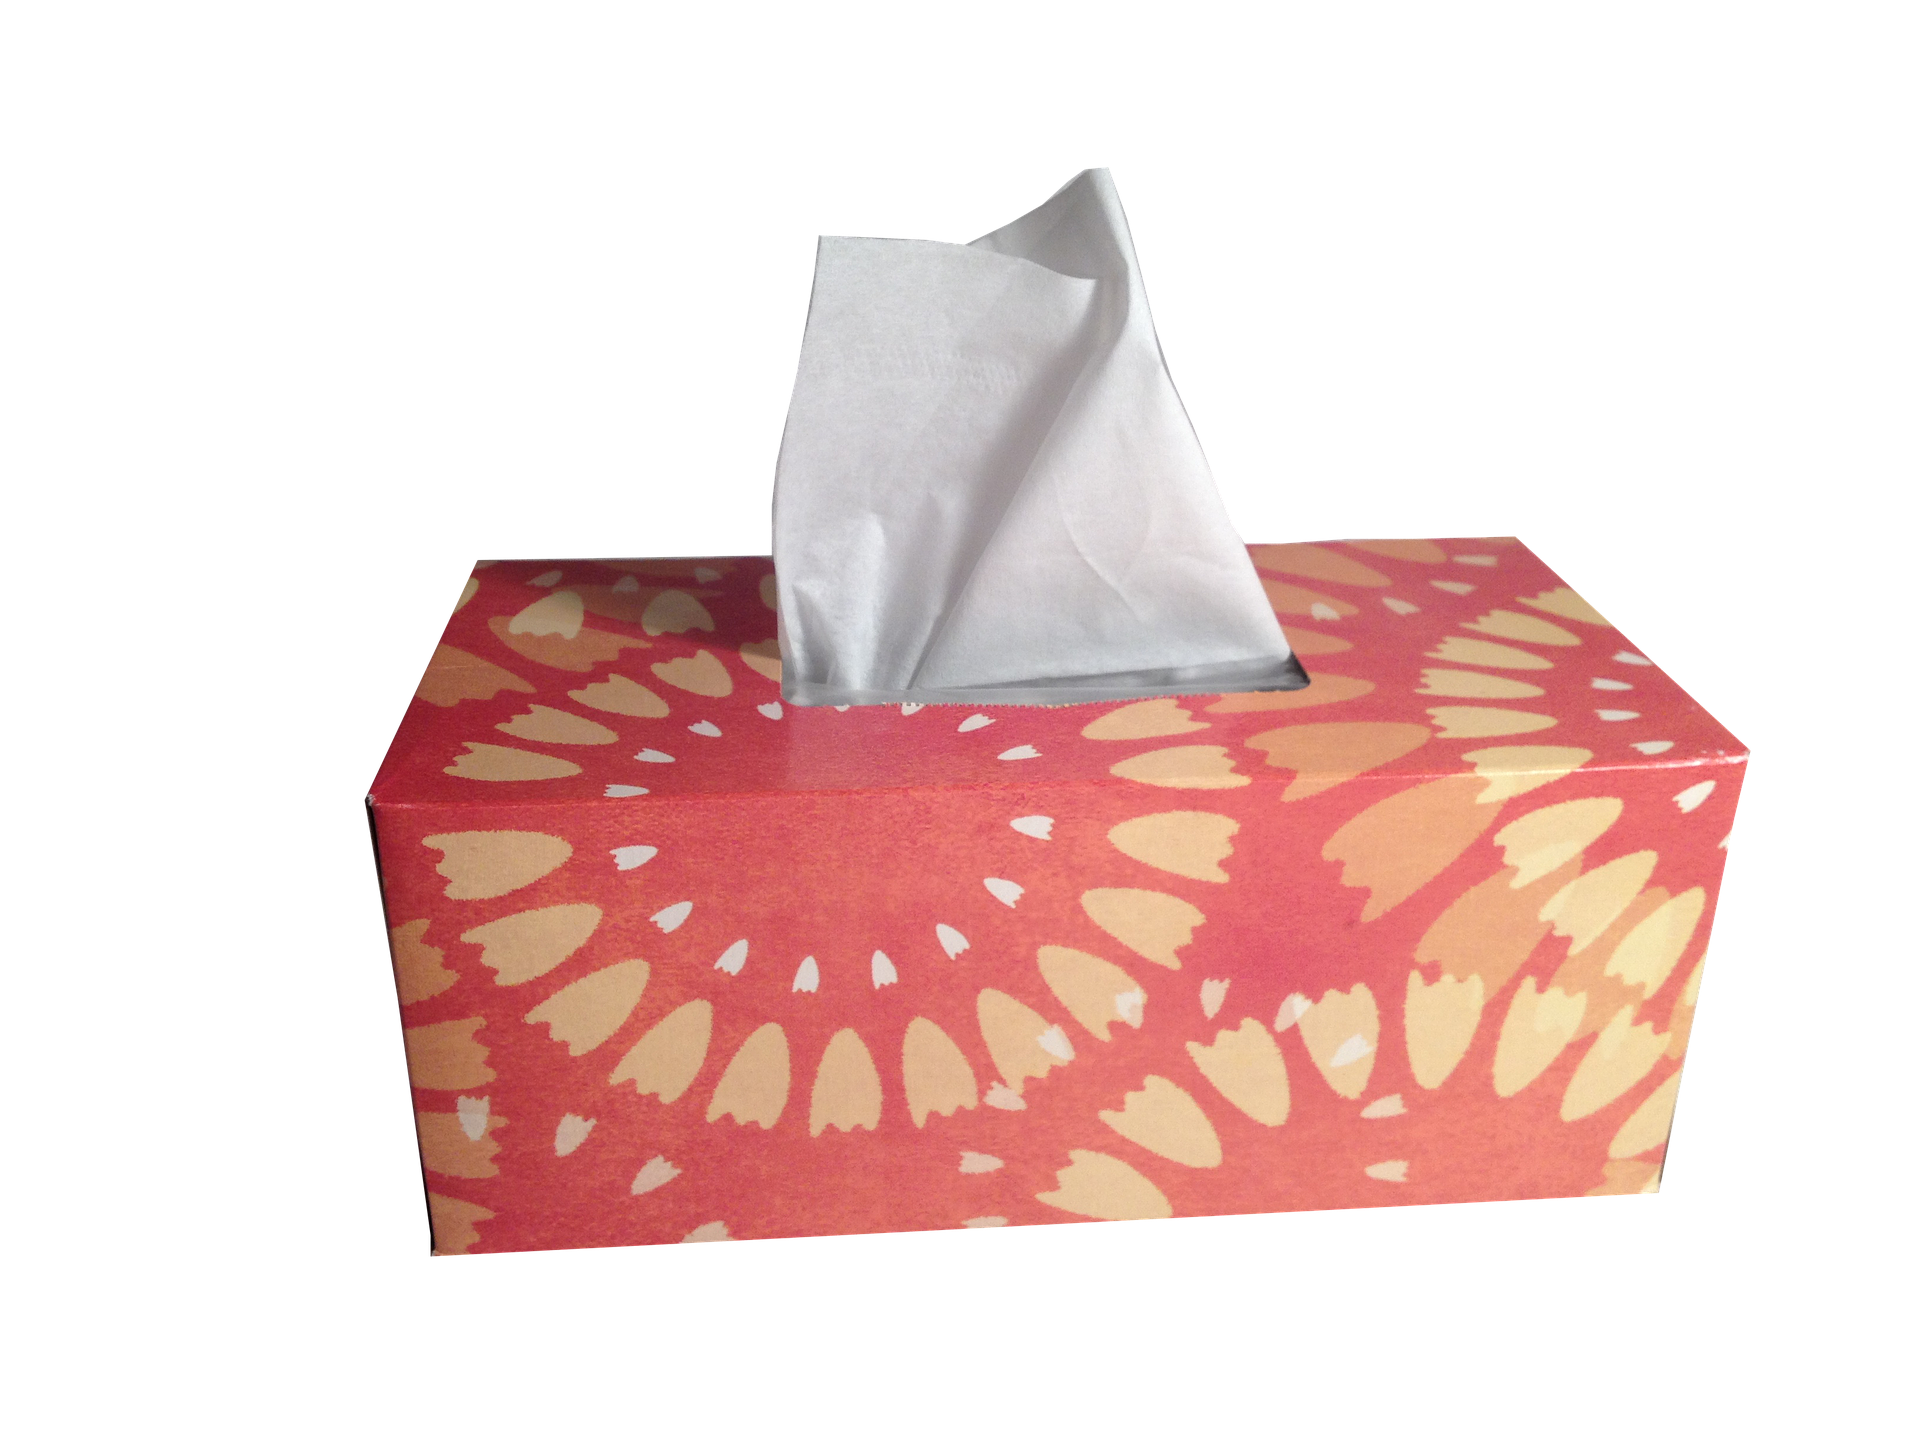 tissues-1000849_1920.png